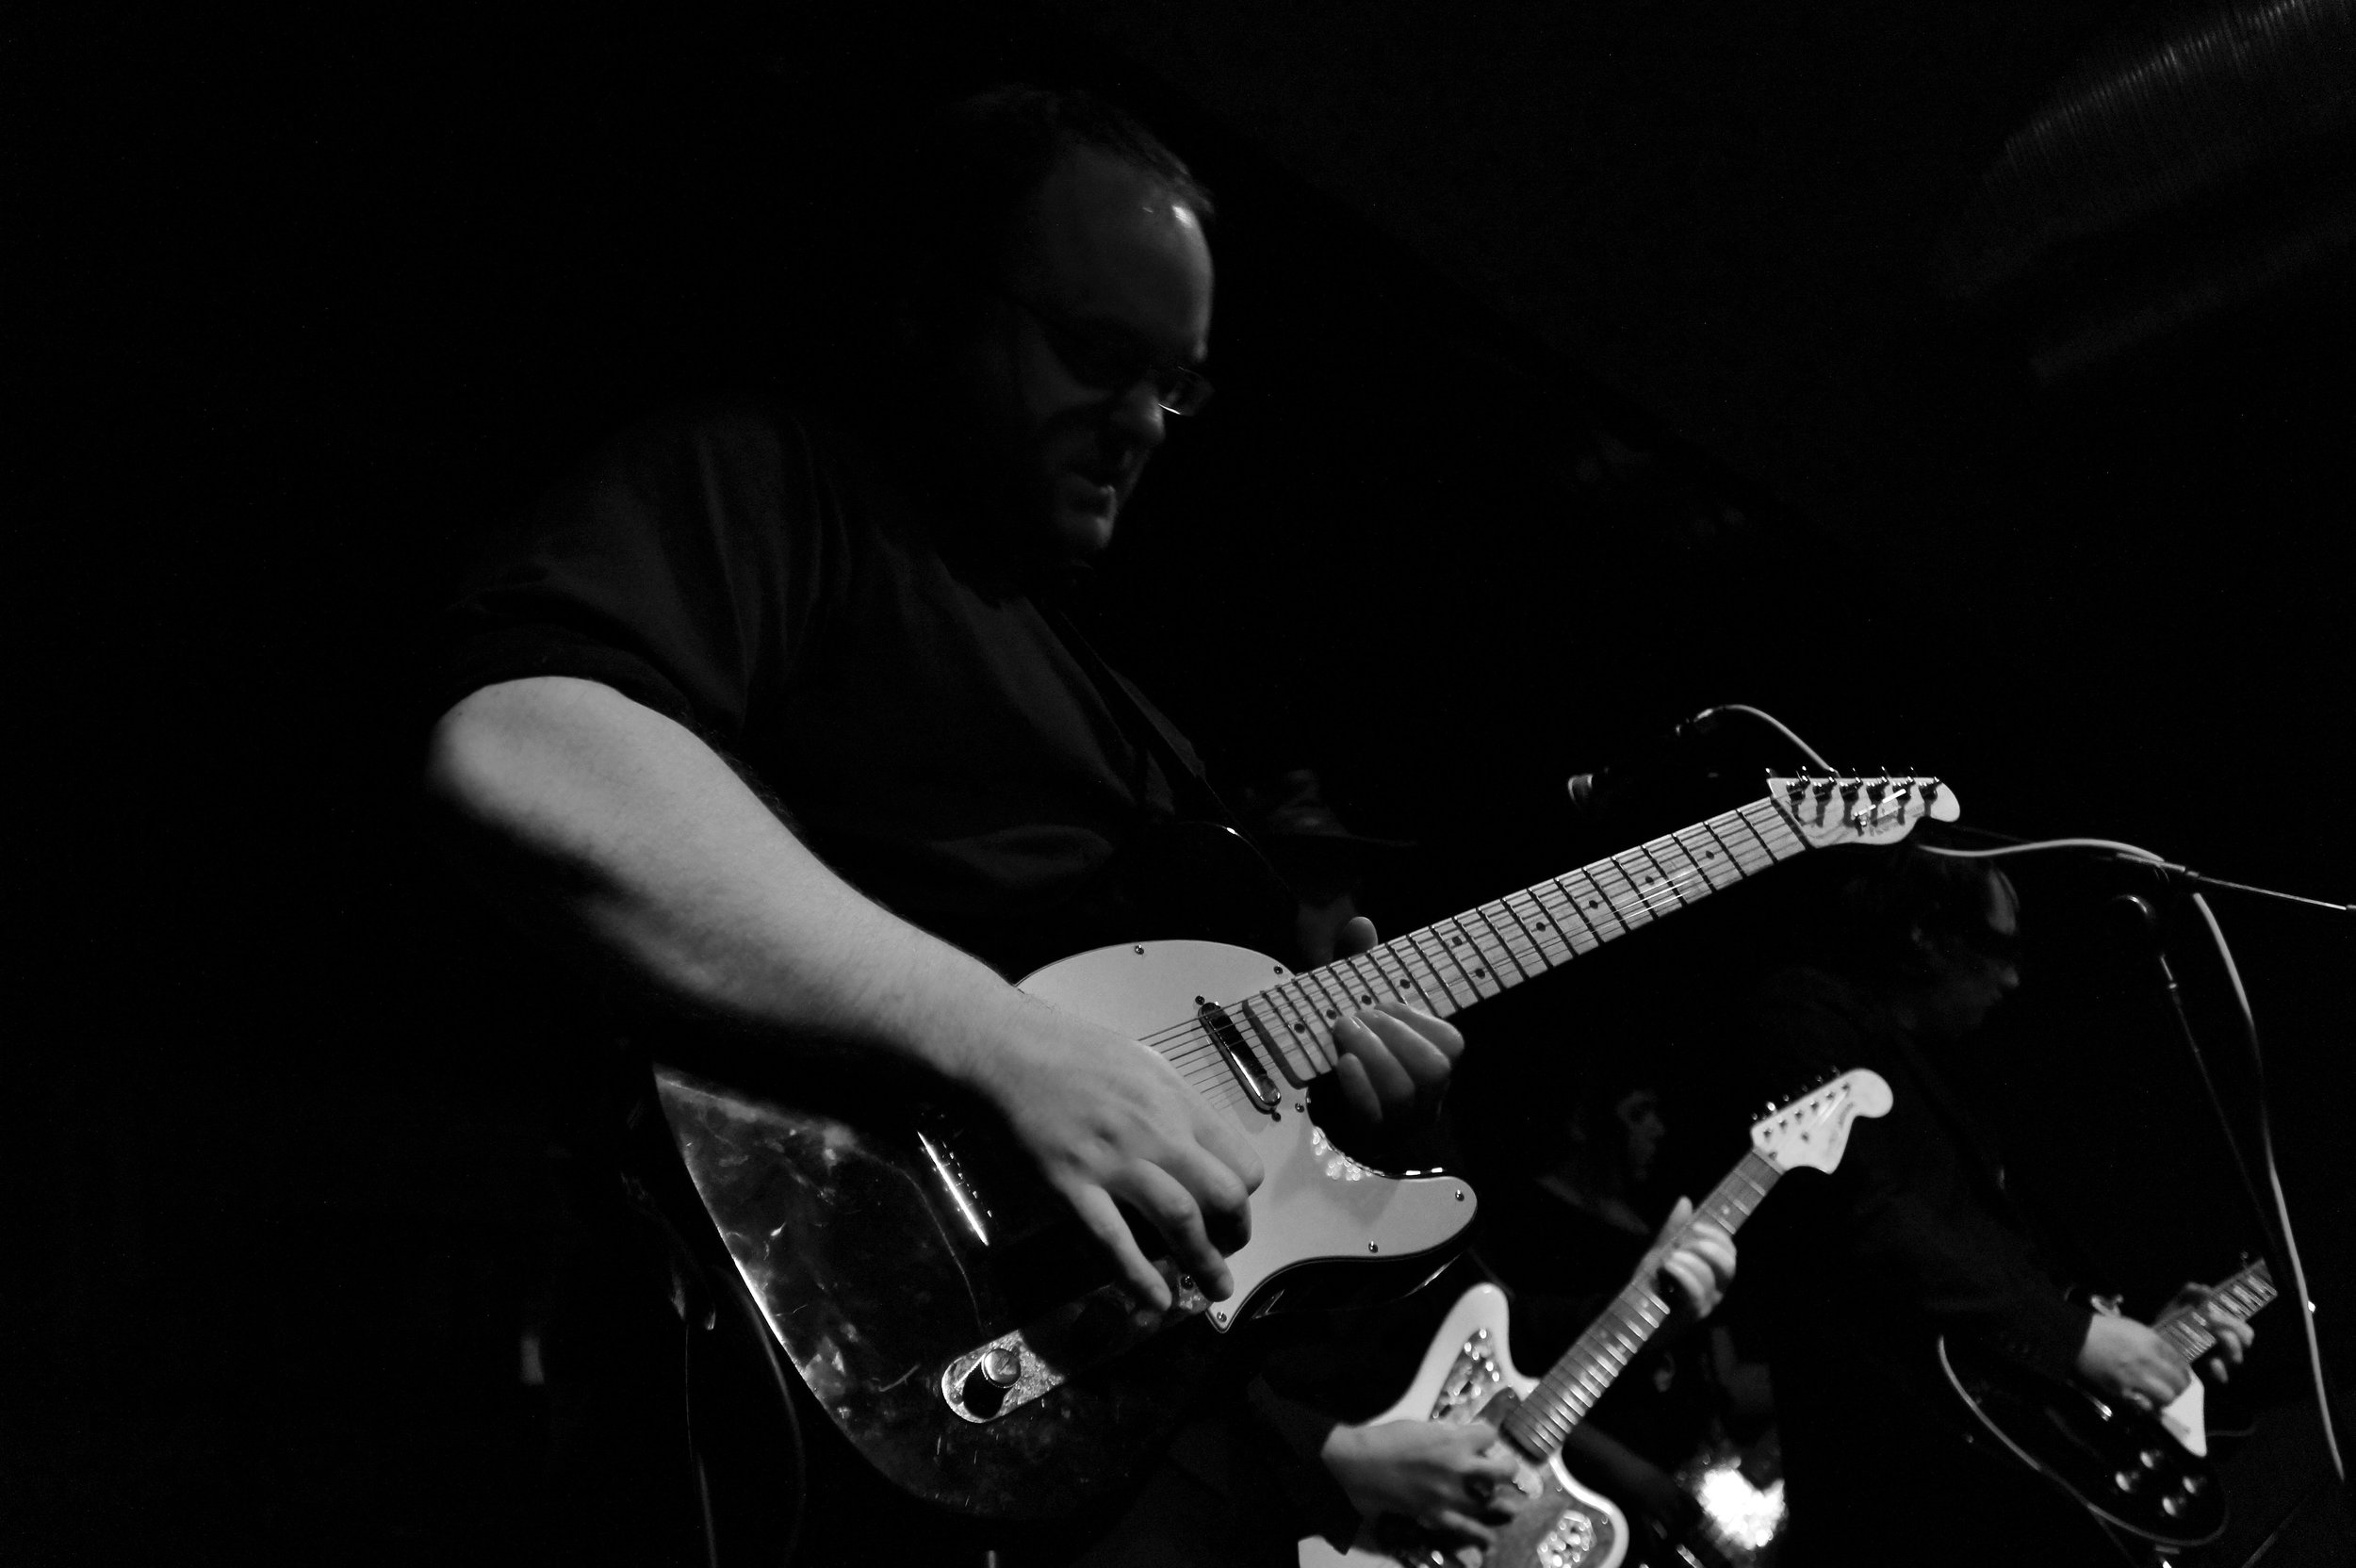 Kane with Disjecta Membra,  Meow , Wellington, 21 May 2015 (supporting  Mick Harvey & The Intoxicated Men ). Photo:  James Black